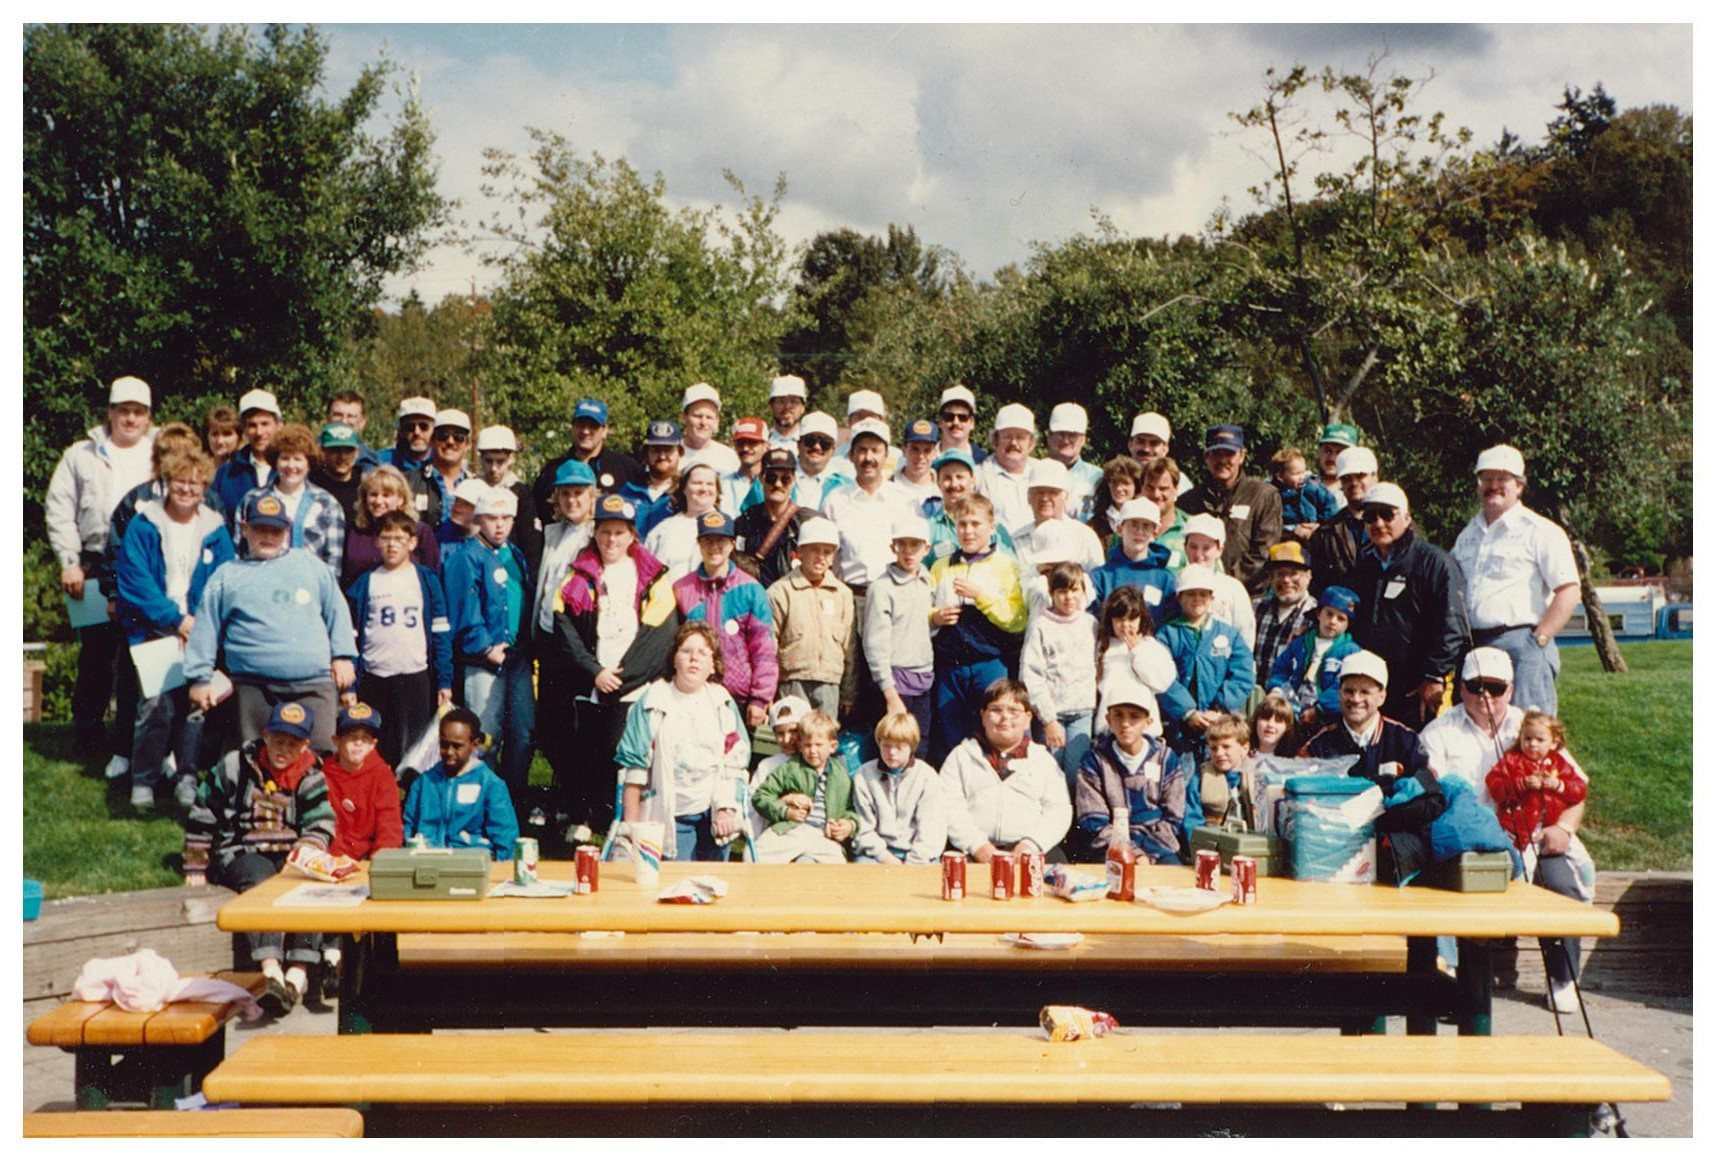 The First Ever C.A.S.T. for Kids Event in 1991